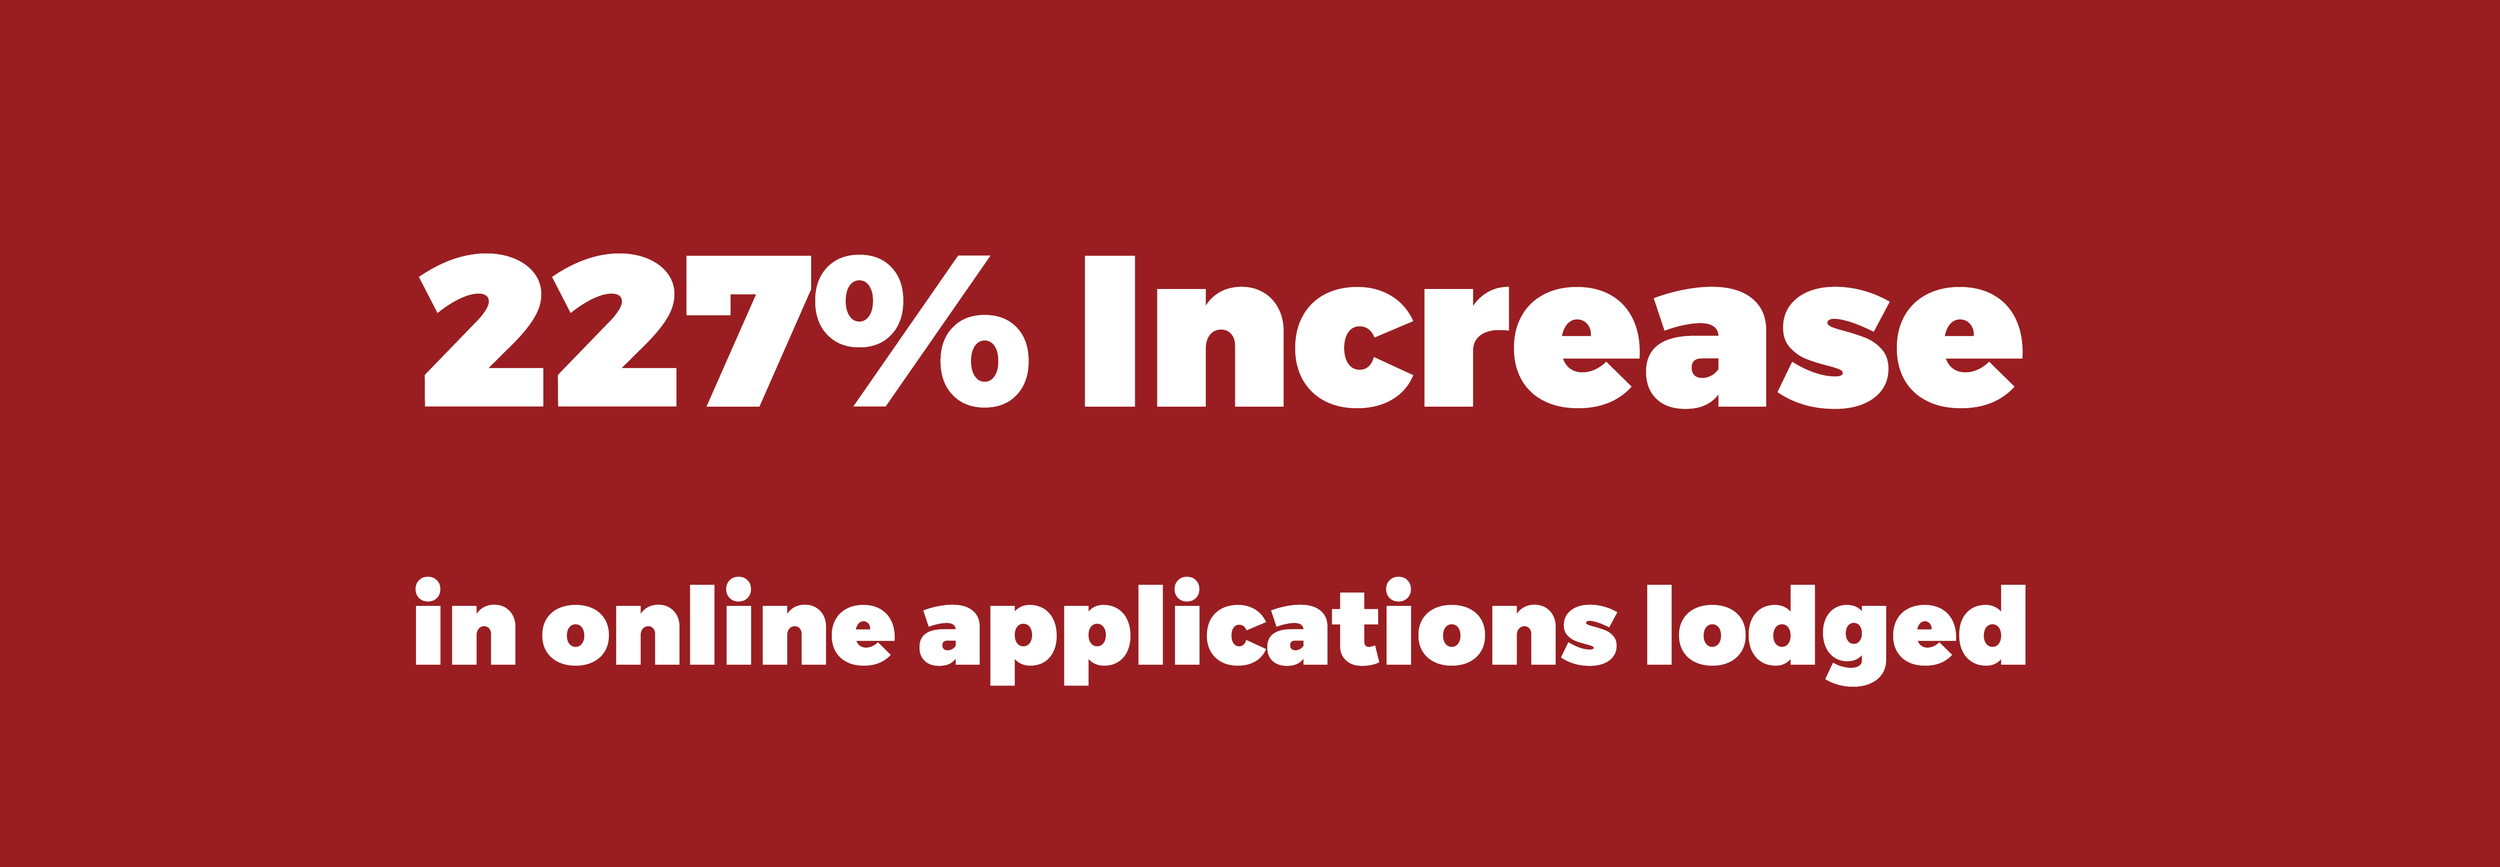 The number of land use applications lodged online increased by 227% during the twelve months following go live in May 2017.